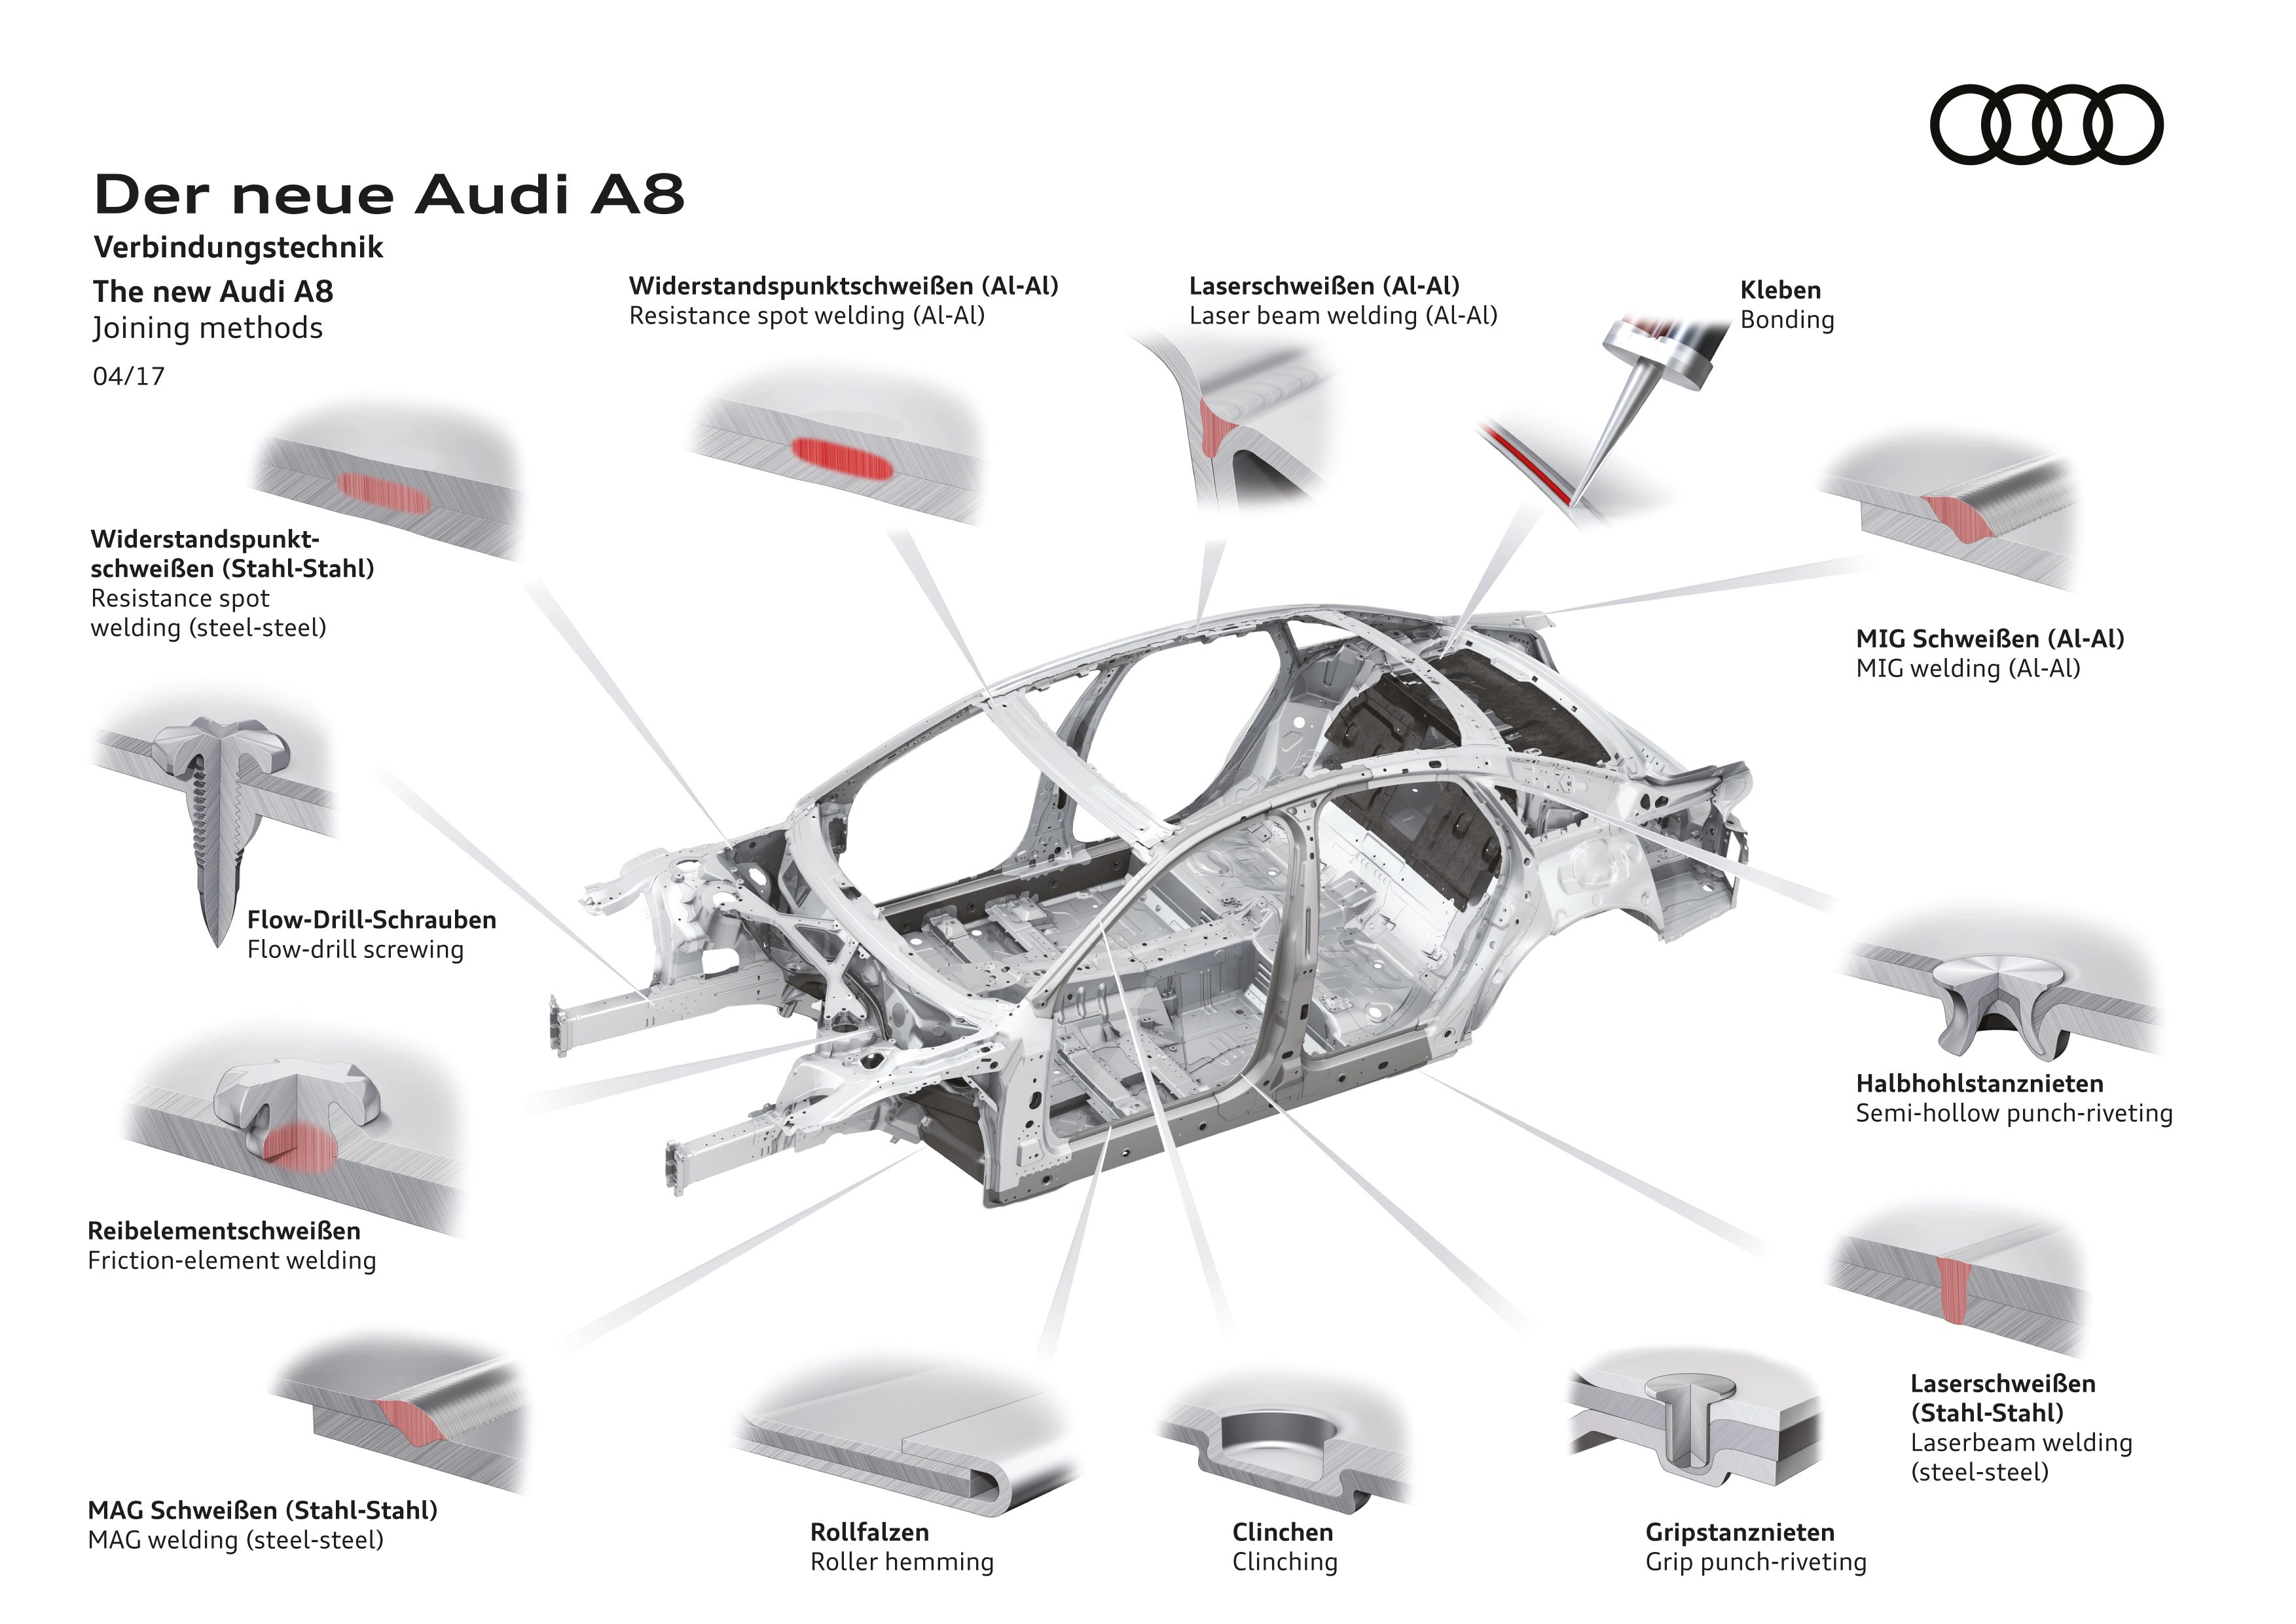 D5 Audi A8 to use multi-material space frame chassis Image